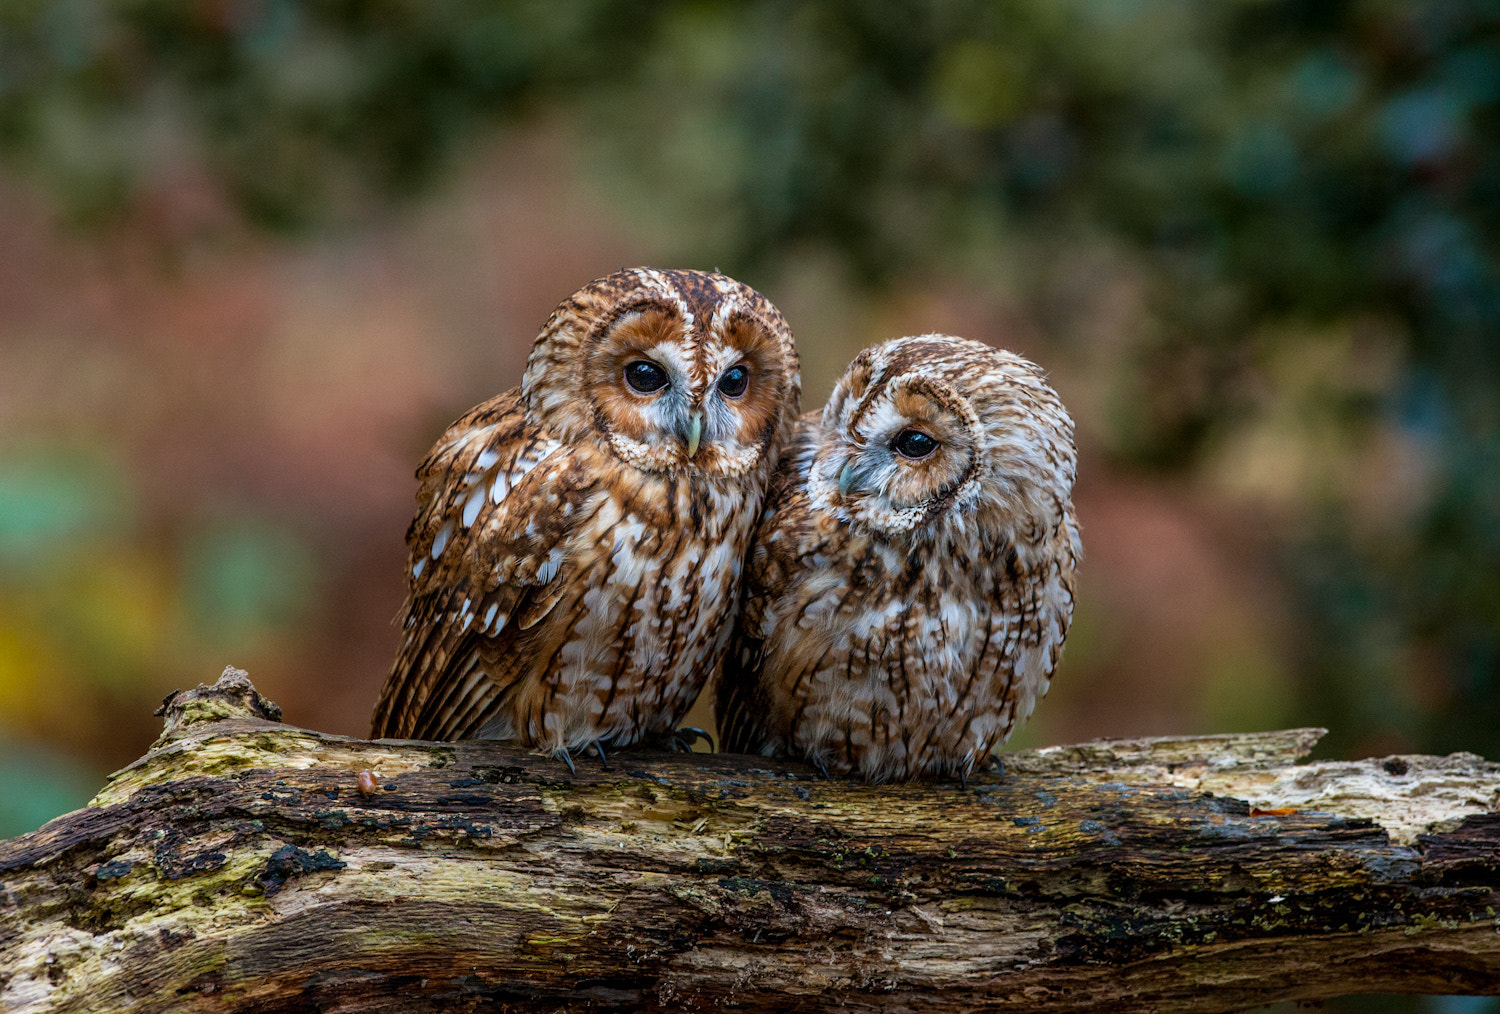 Photograph Owls by Peter Hale on 500px